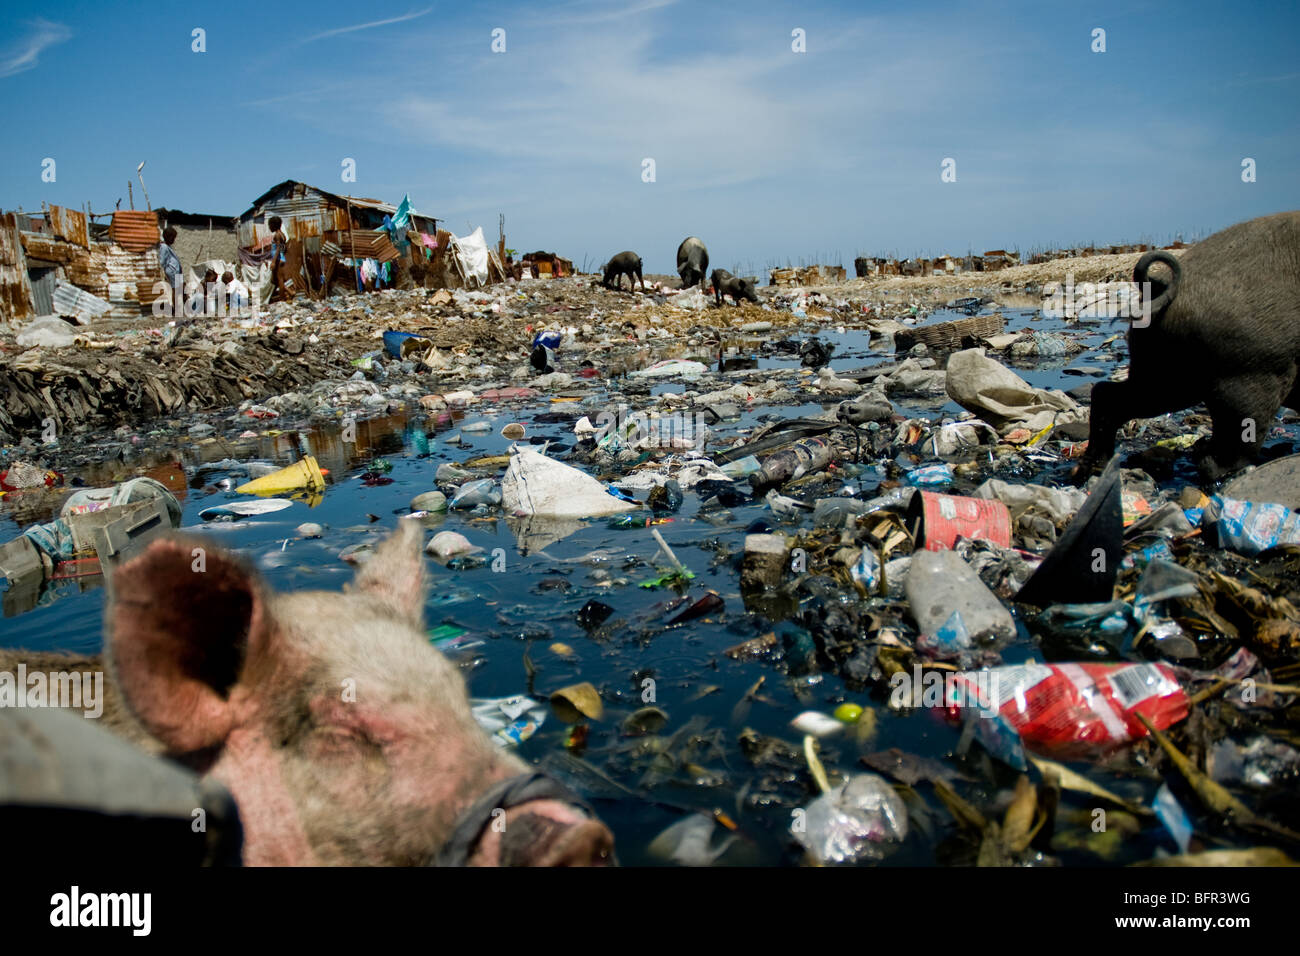 Social and living conditions in Haitian slums like Cite Soleil (Port-au-Prince) are a human tragedy. - Stock Image